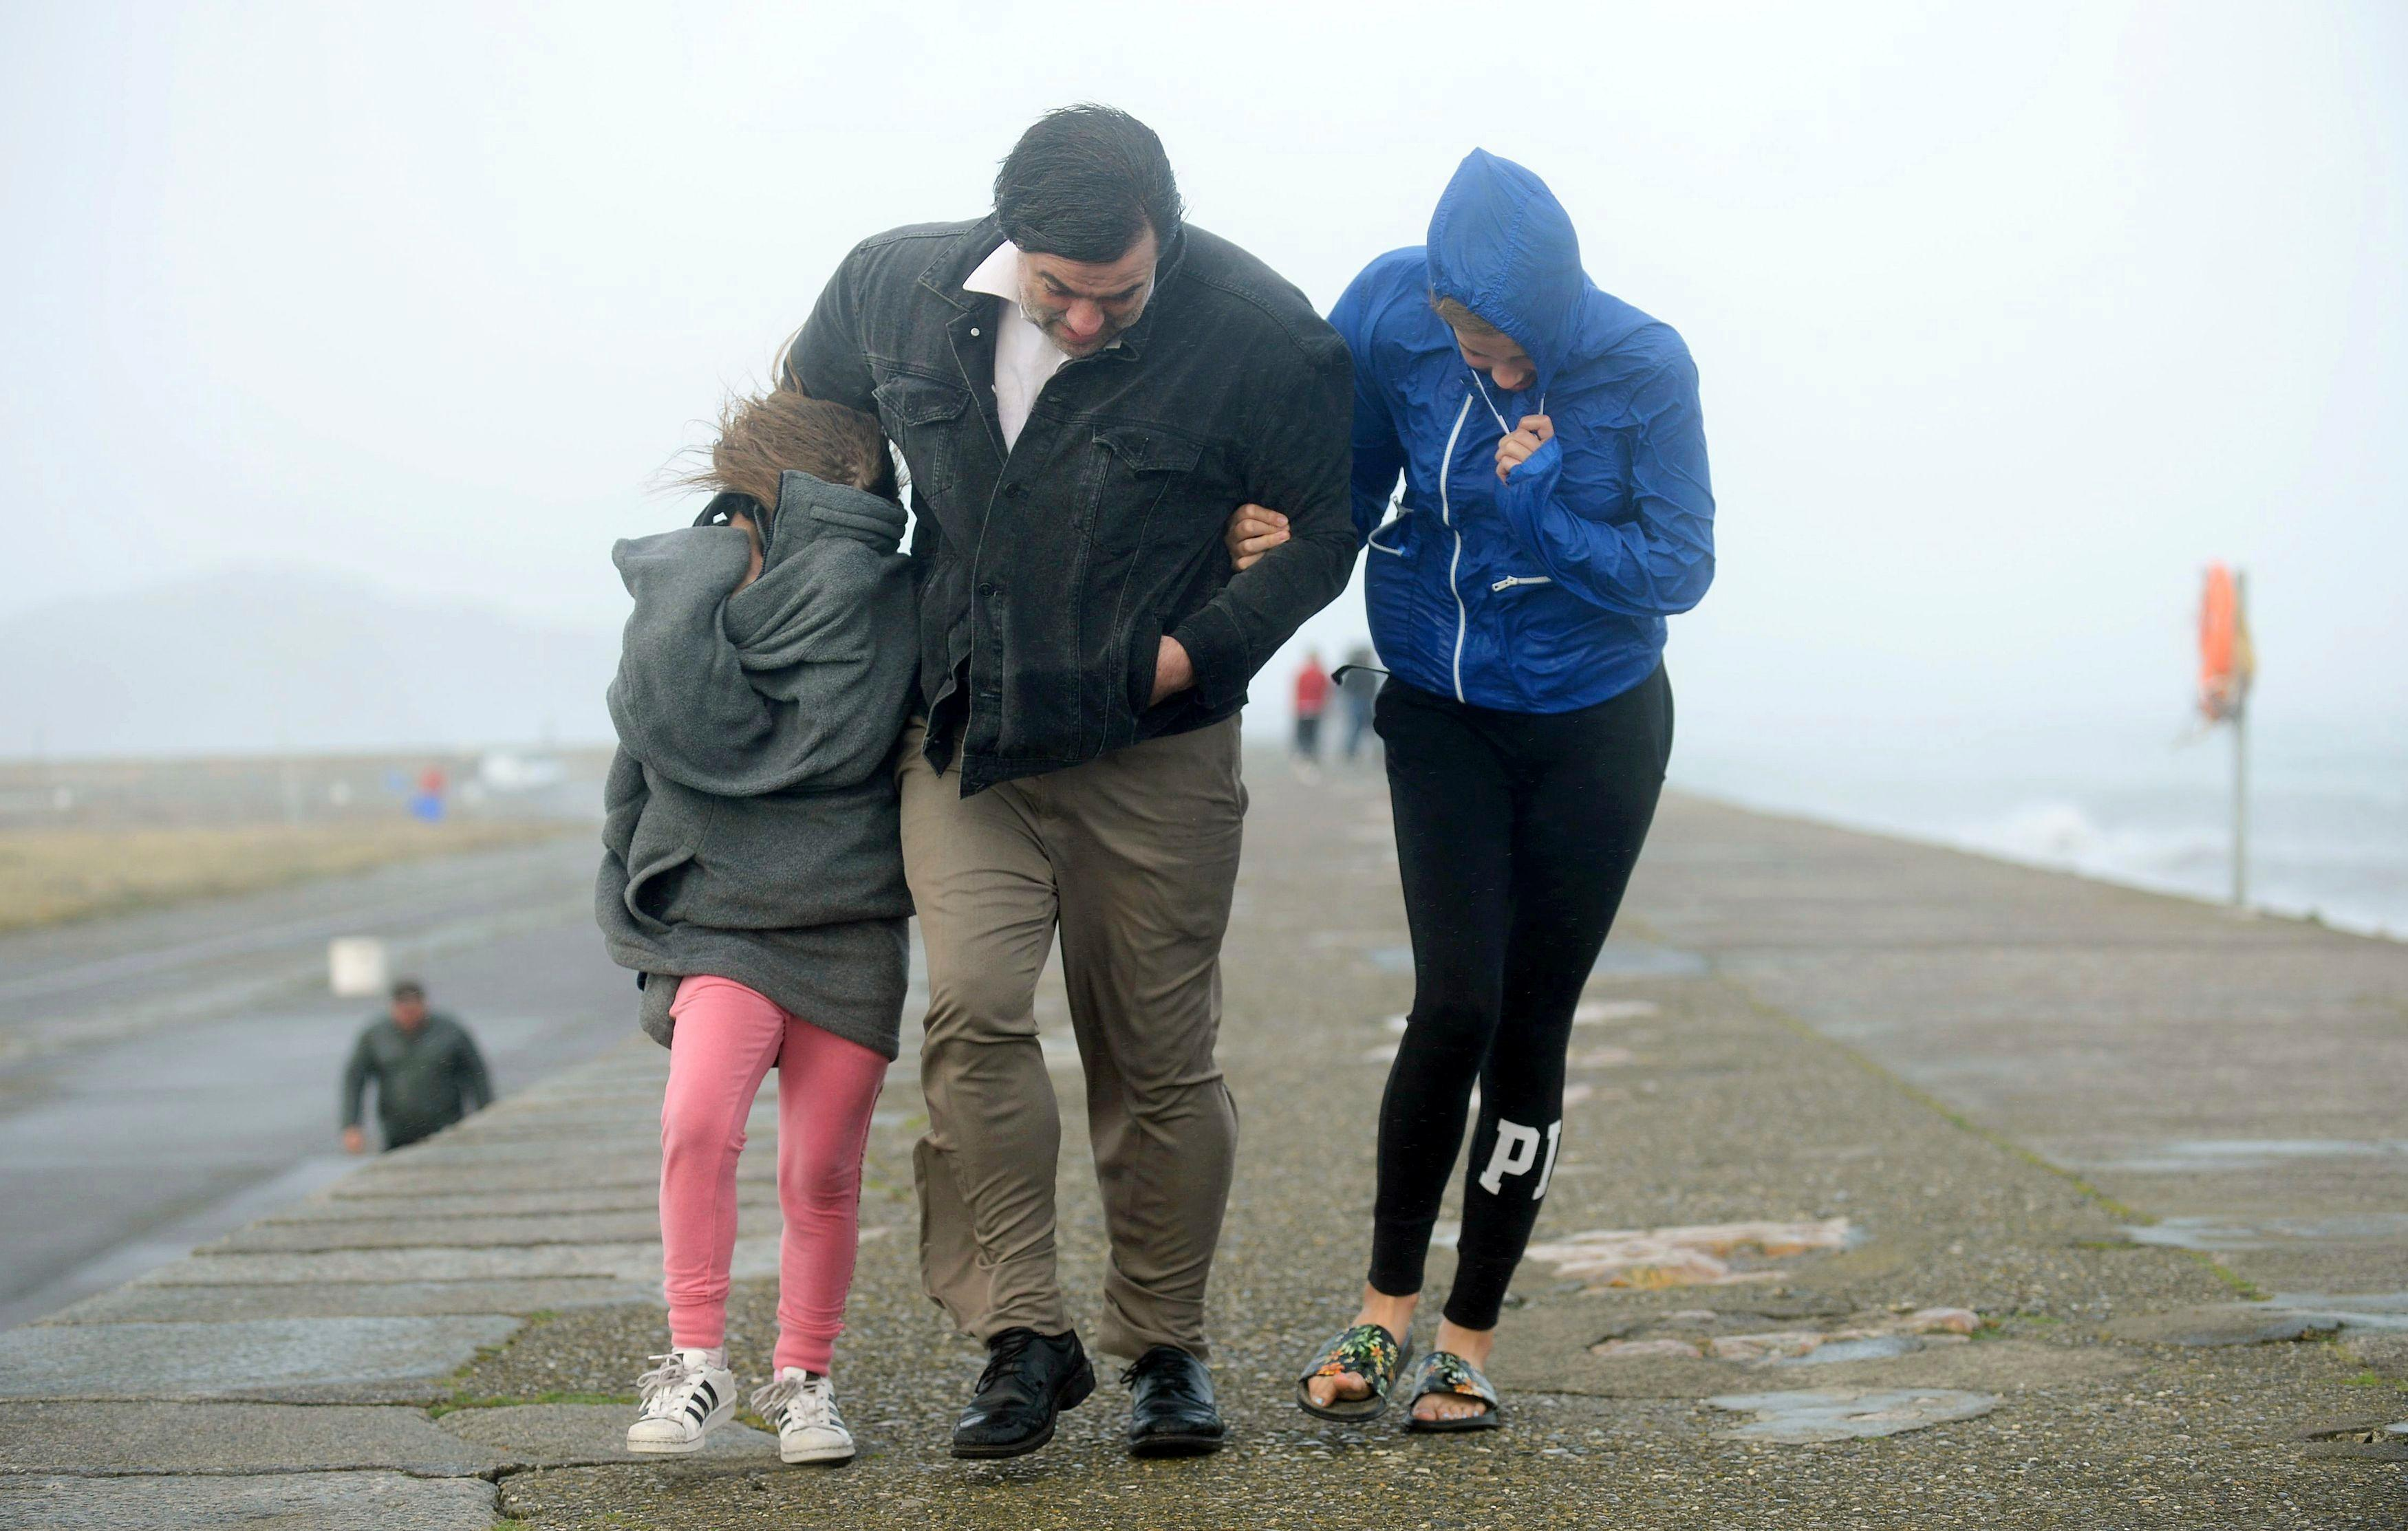 A family walks along a seawall during storm Ophelia on East Pier in Howth, Dublin, Ireland, as the remnants of Hurricane Ophelia batter Ireland and the United Kingdom with gusts of up to 80mph (129kph), Monday Oct. 16, 2017. Three people have been confirmed dead in Ireland in incidents related to Storm Ophelia. (Caroline Quinn/PA via AP)